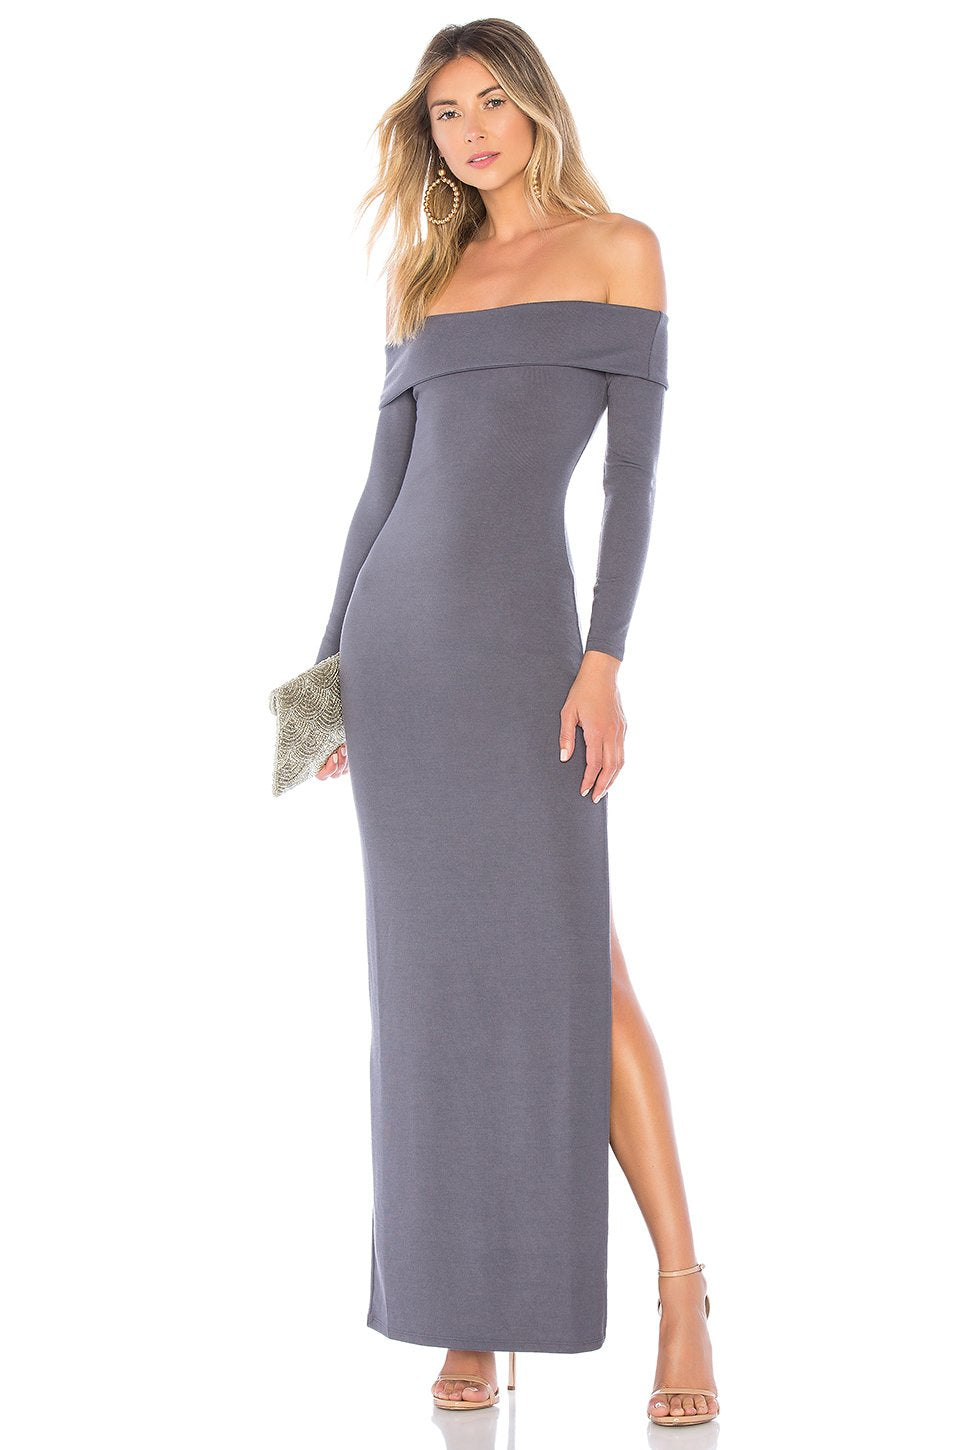 Royale Maxi Dress in Charcoal